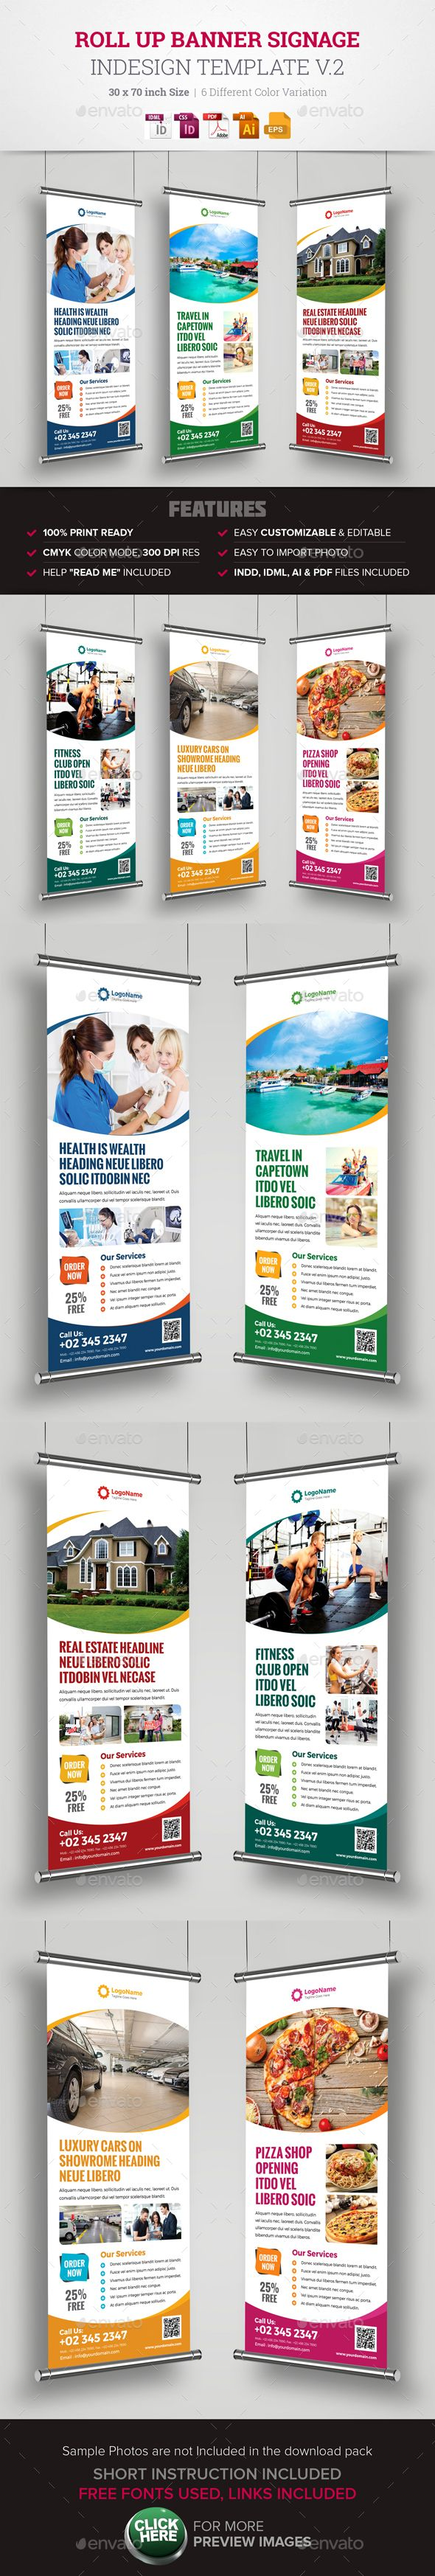 Roll-Up Banner Signage Template InDesign INDD, Vector EPS, AI #design Download: http://graphicriver.net/item/roll-up-banner-signage-indesign-v2/14231481?ref=ksioks